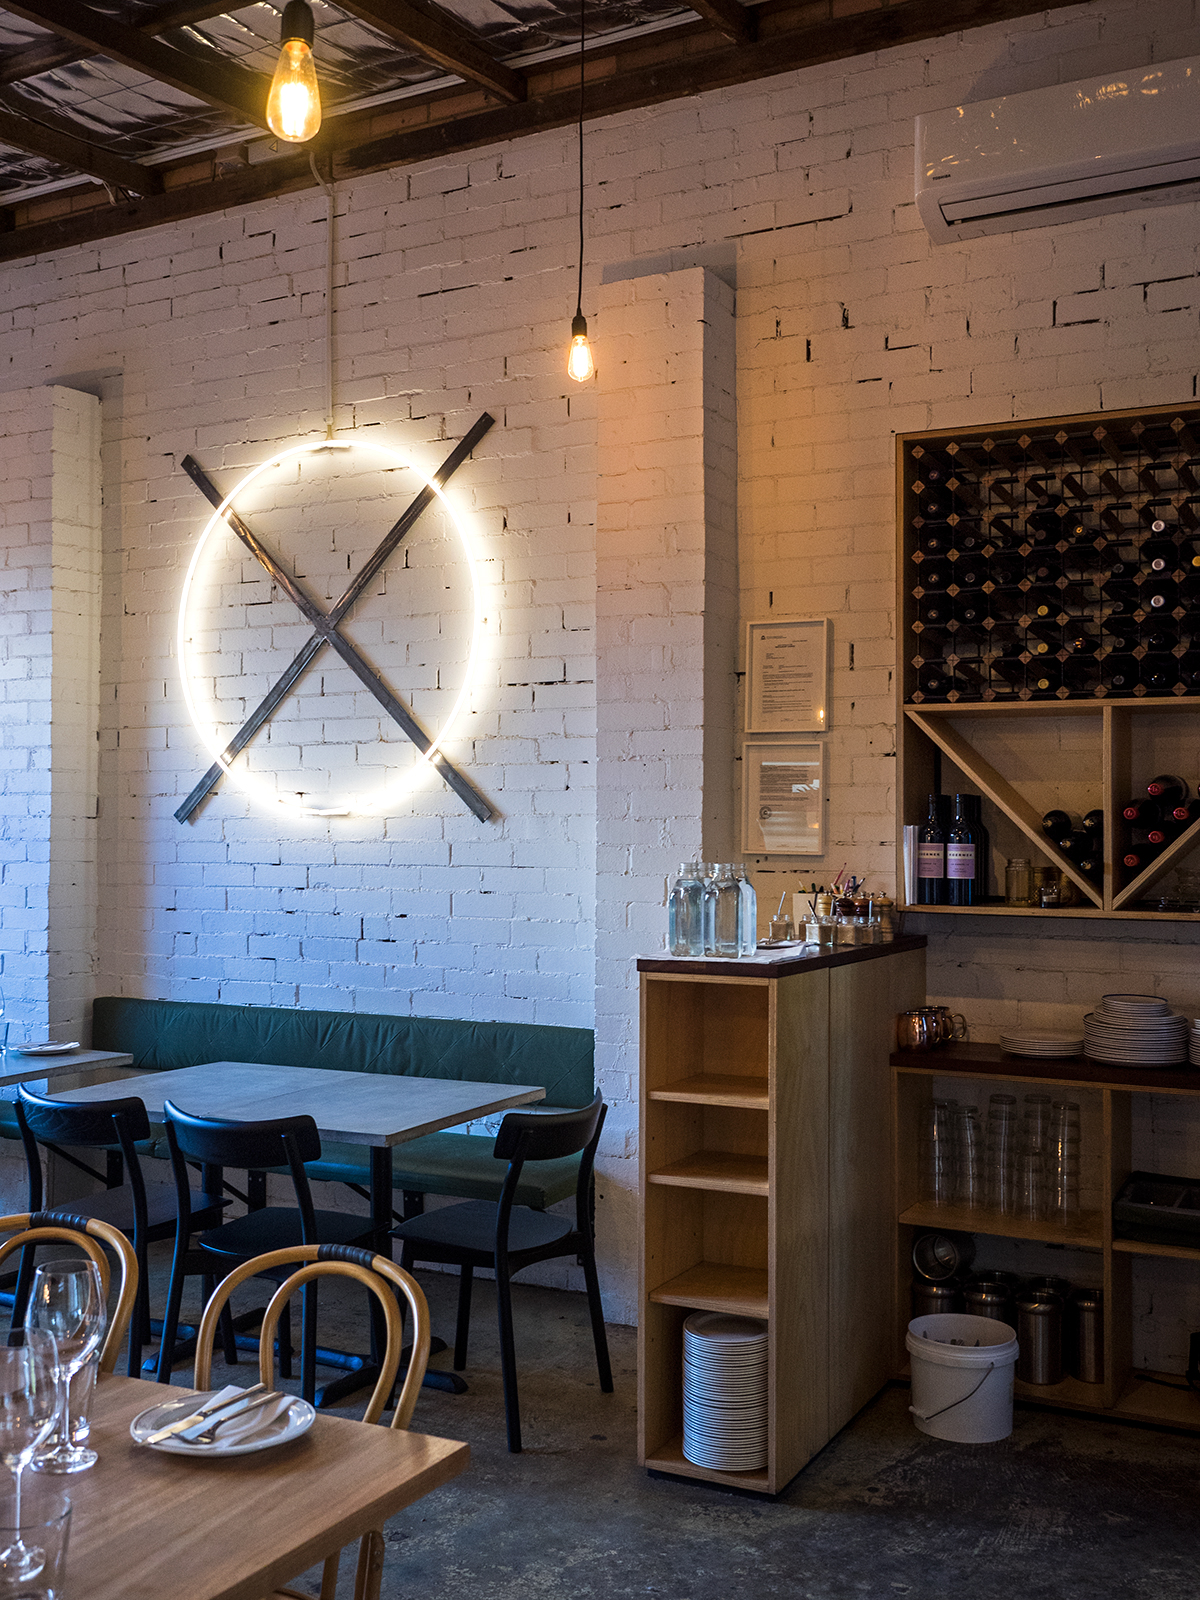 Favourite Perth cafes, Propeller North Freo